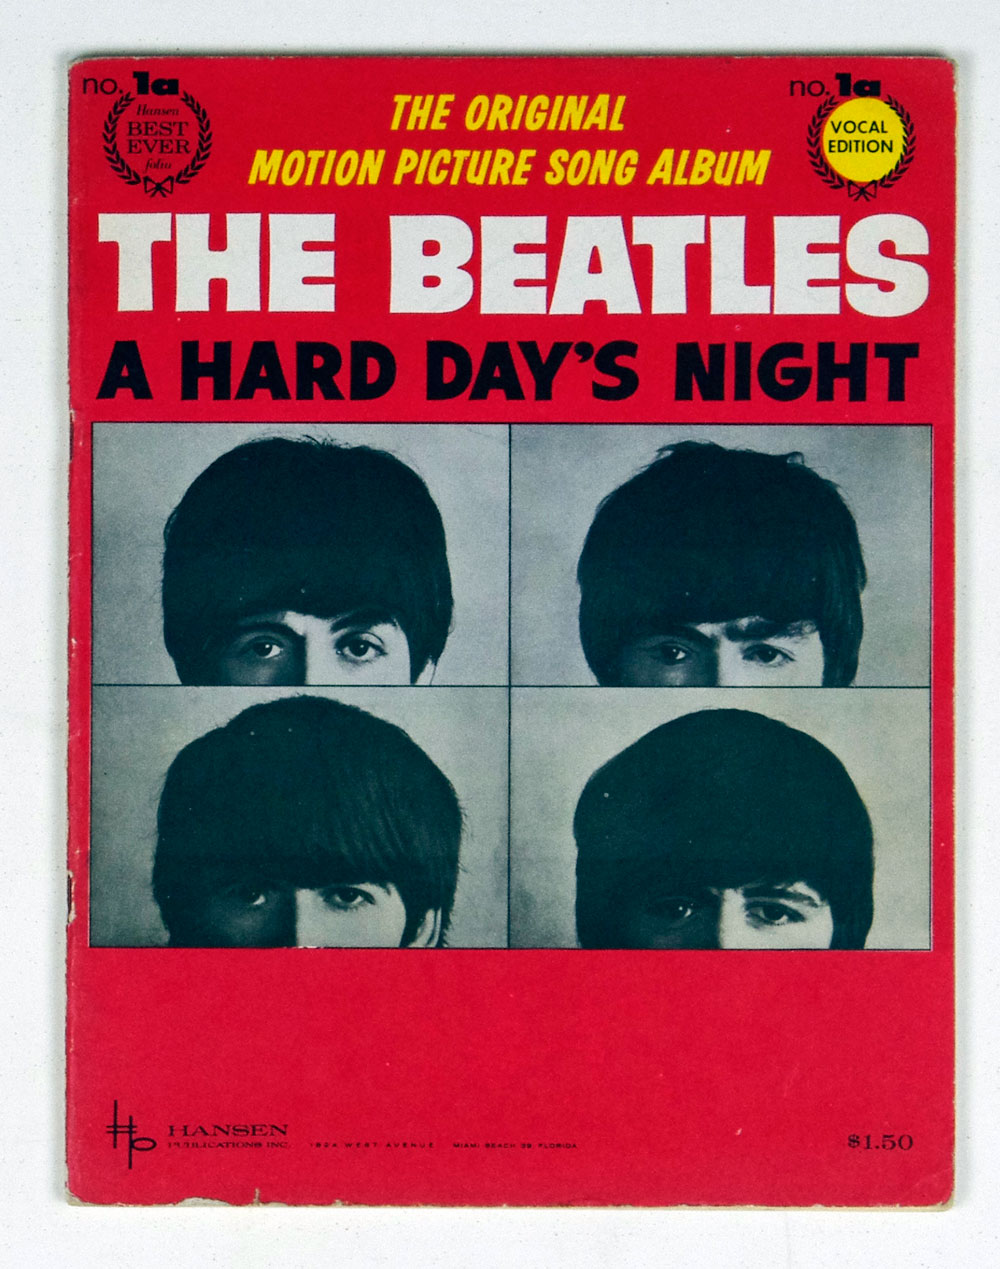 The Beatles Song Book 1964 A Hard Day's Night